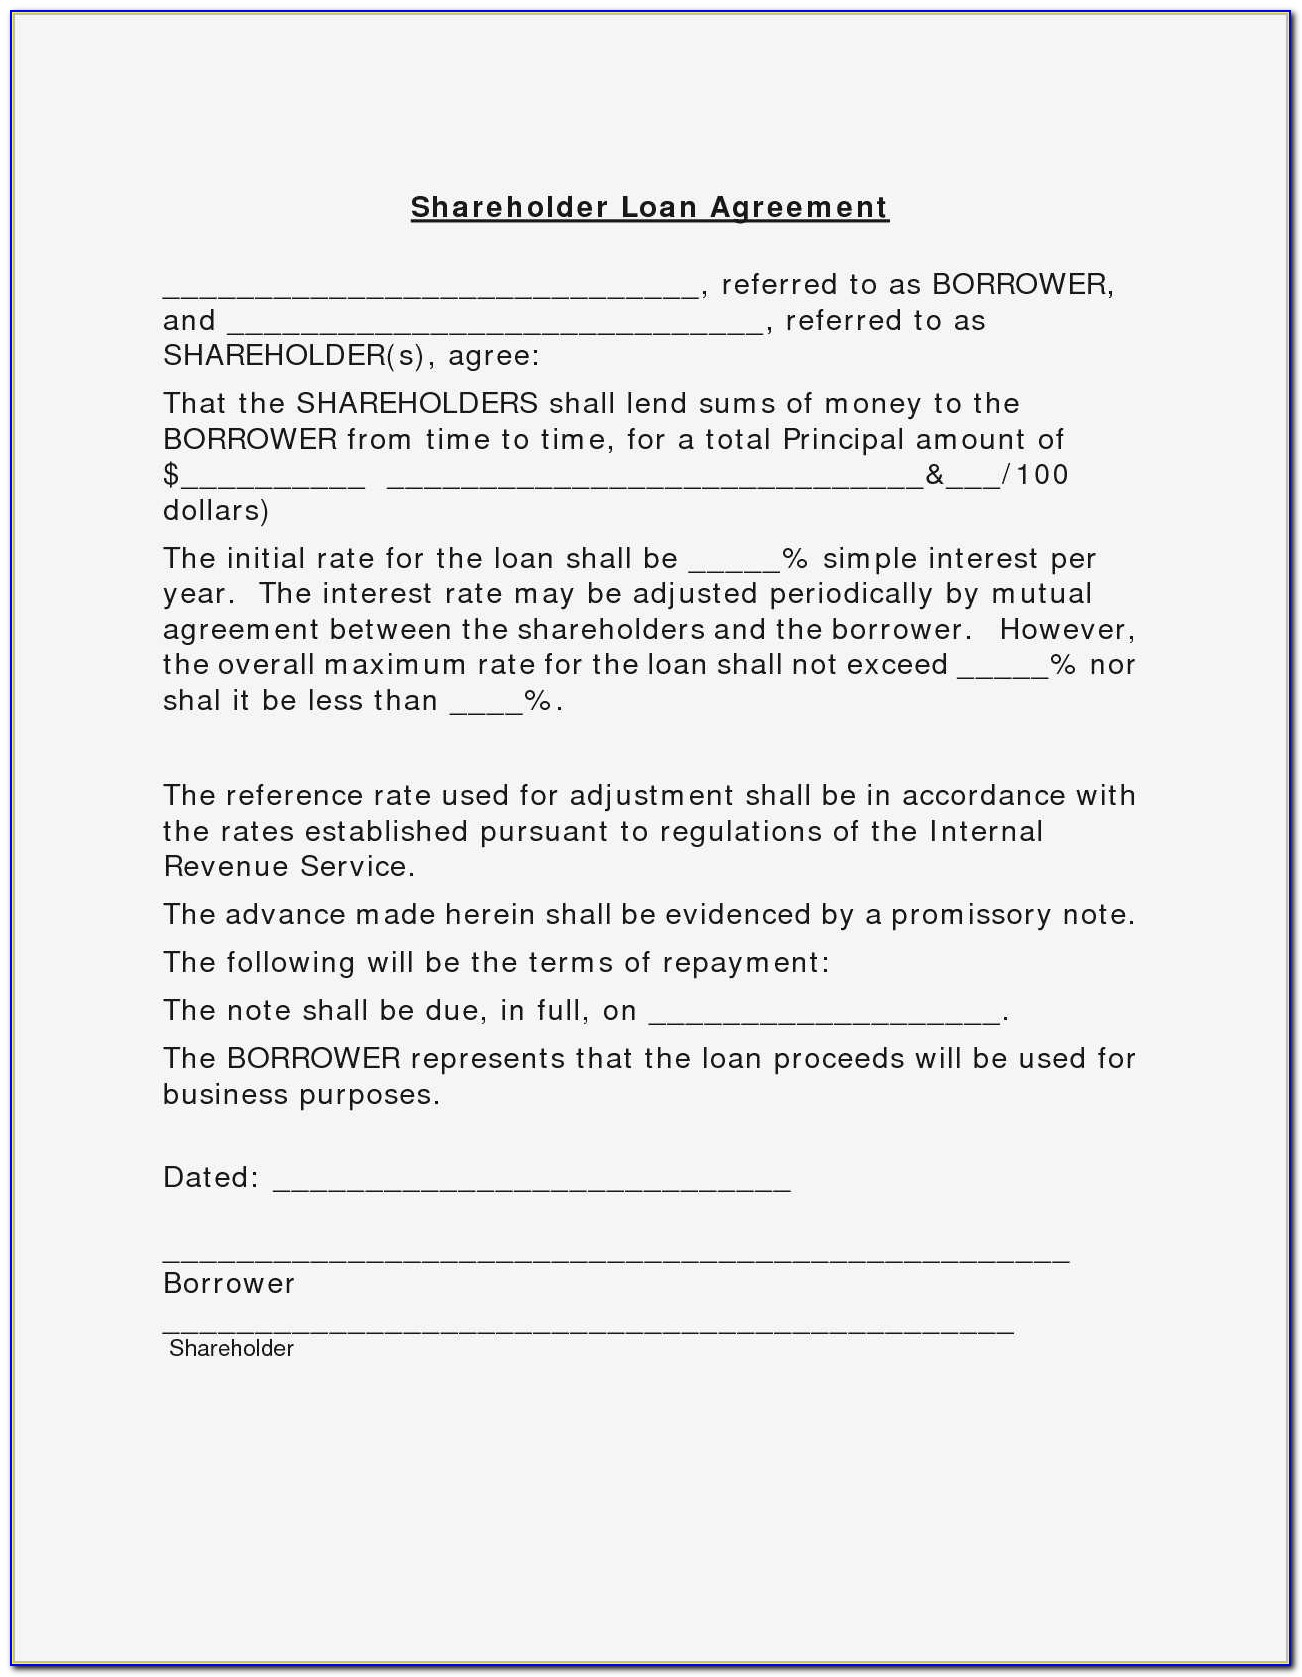 Credit Card Agreement Borrower Rights Beautiful Loan Agreement Template Word Samples